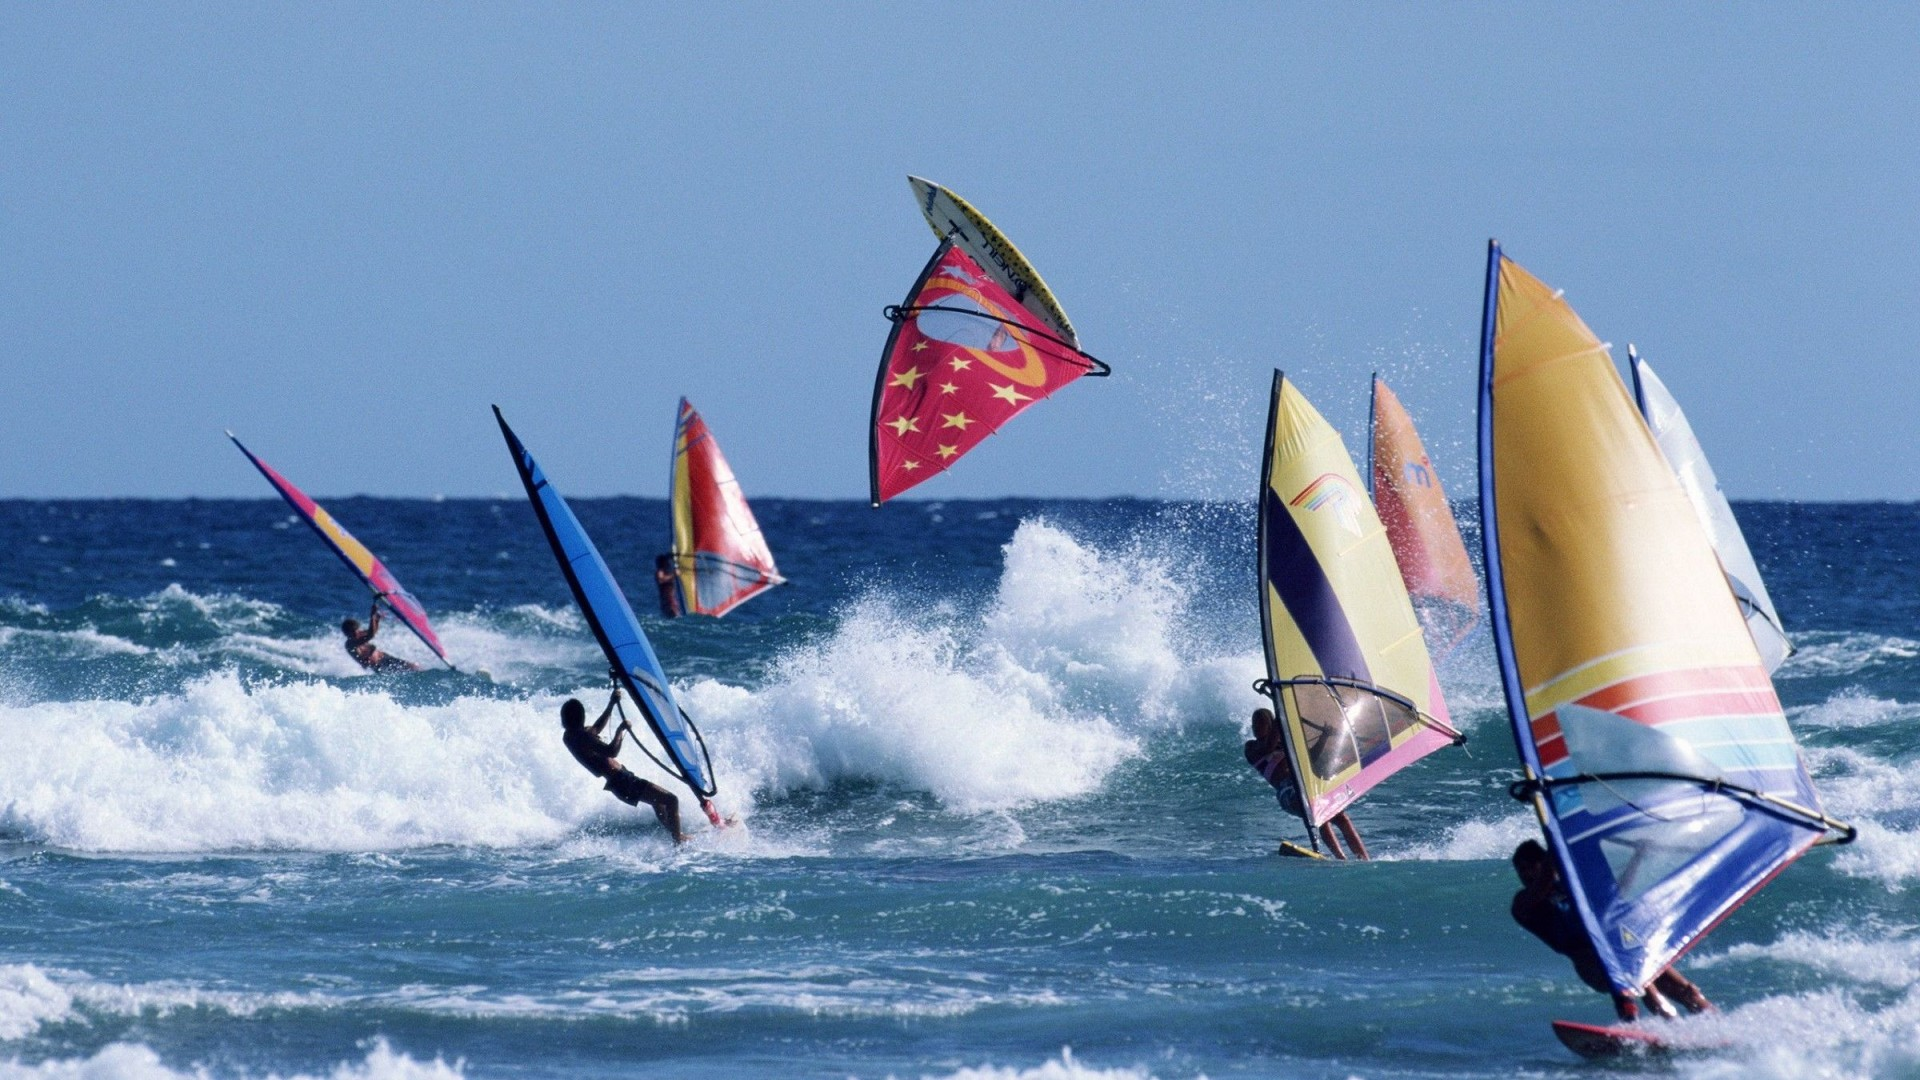 windsurf-goa-sports-beach-hd-499063